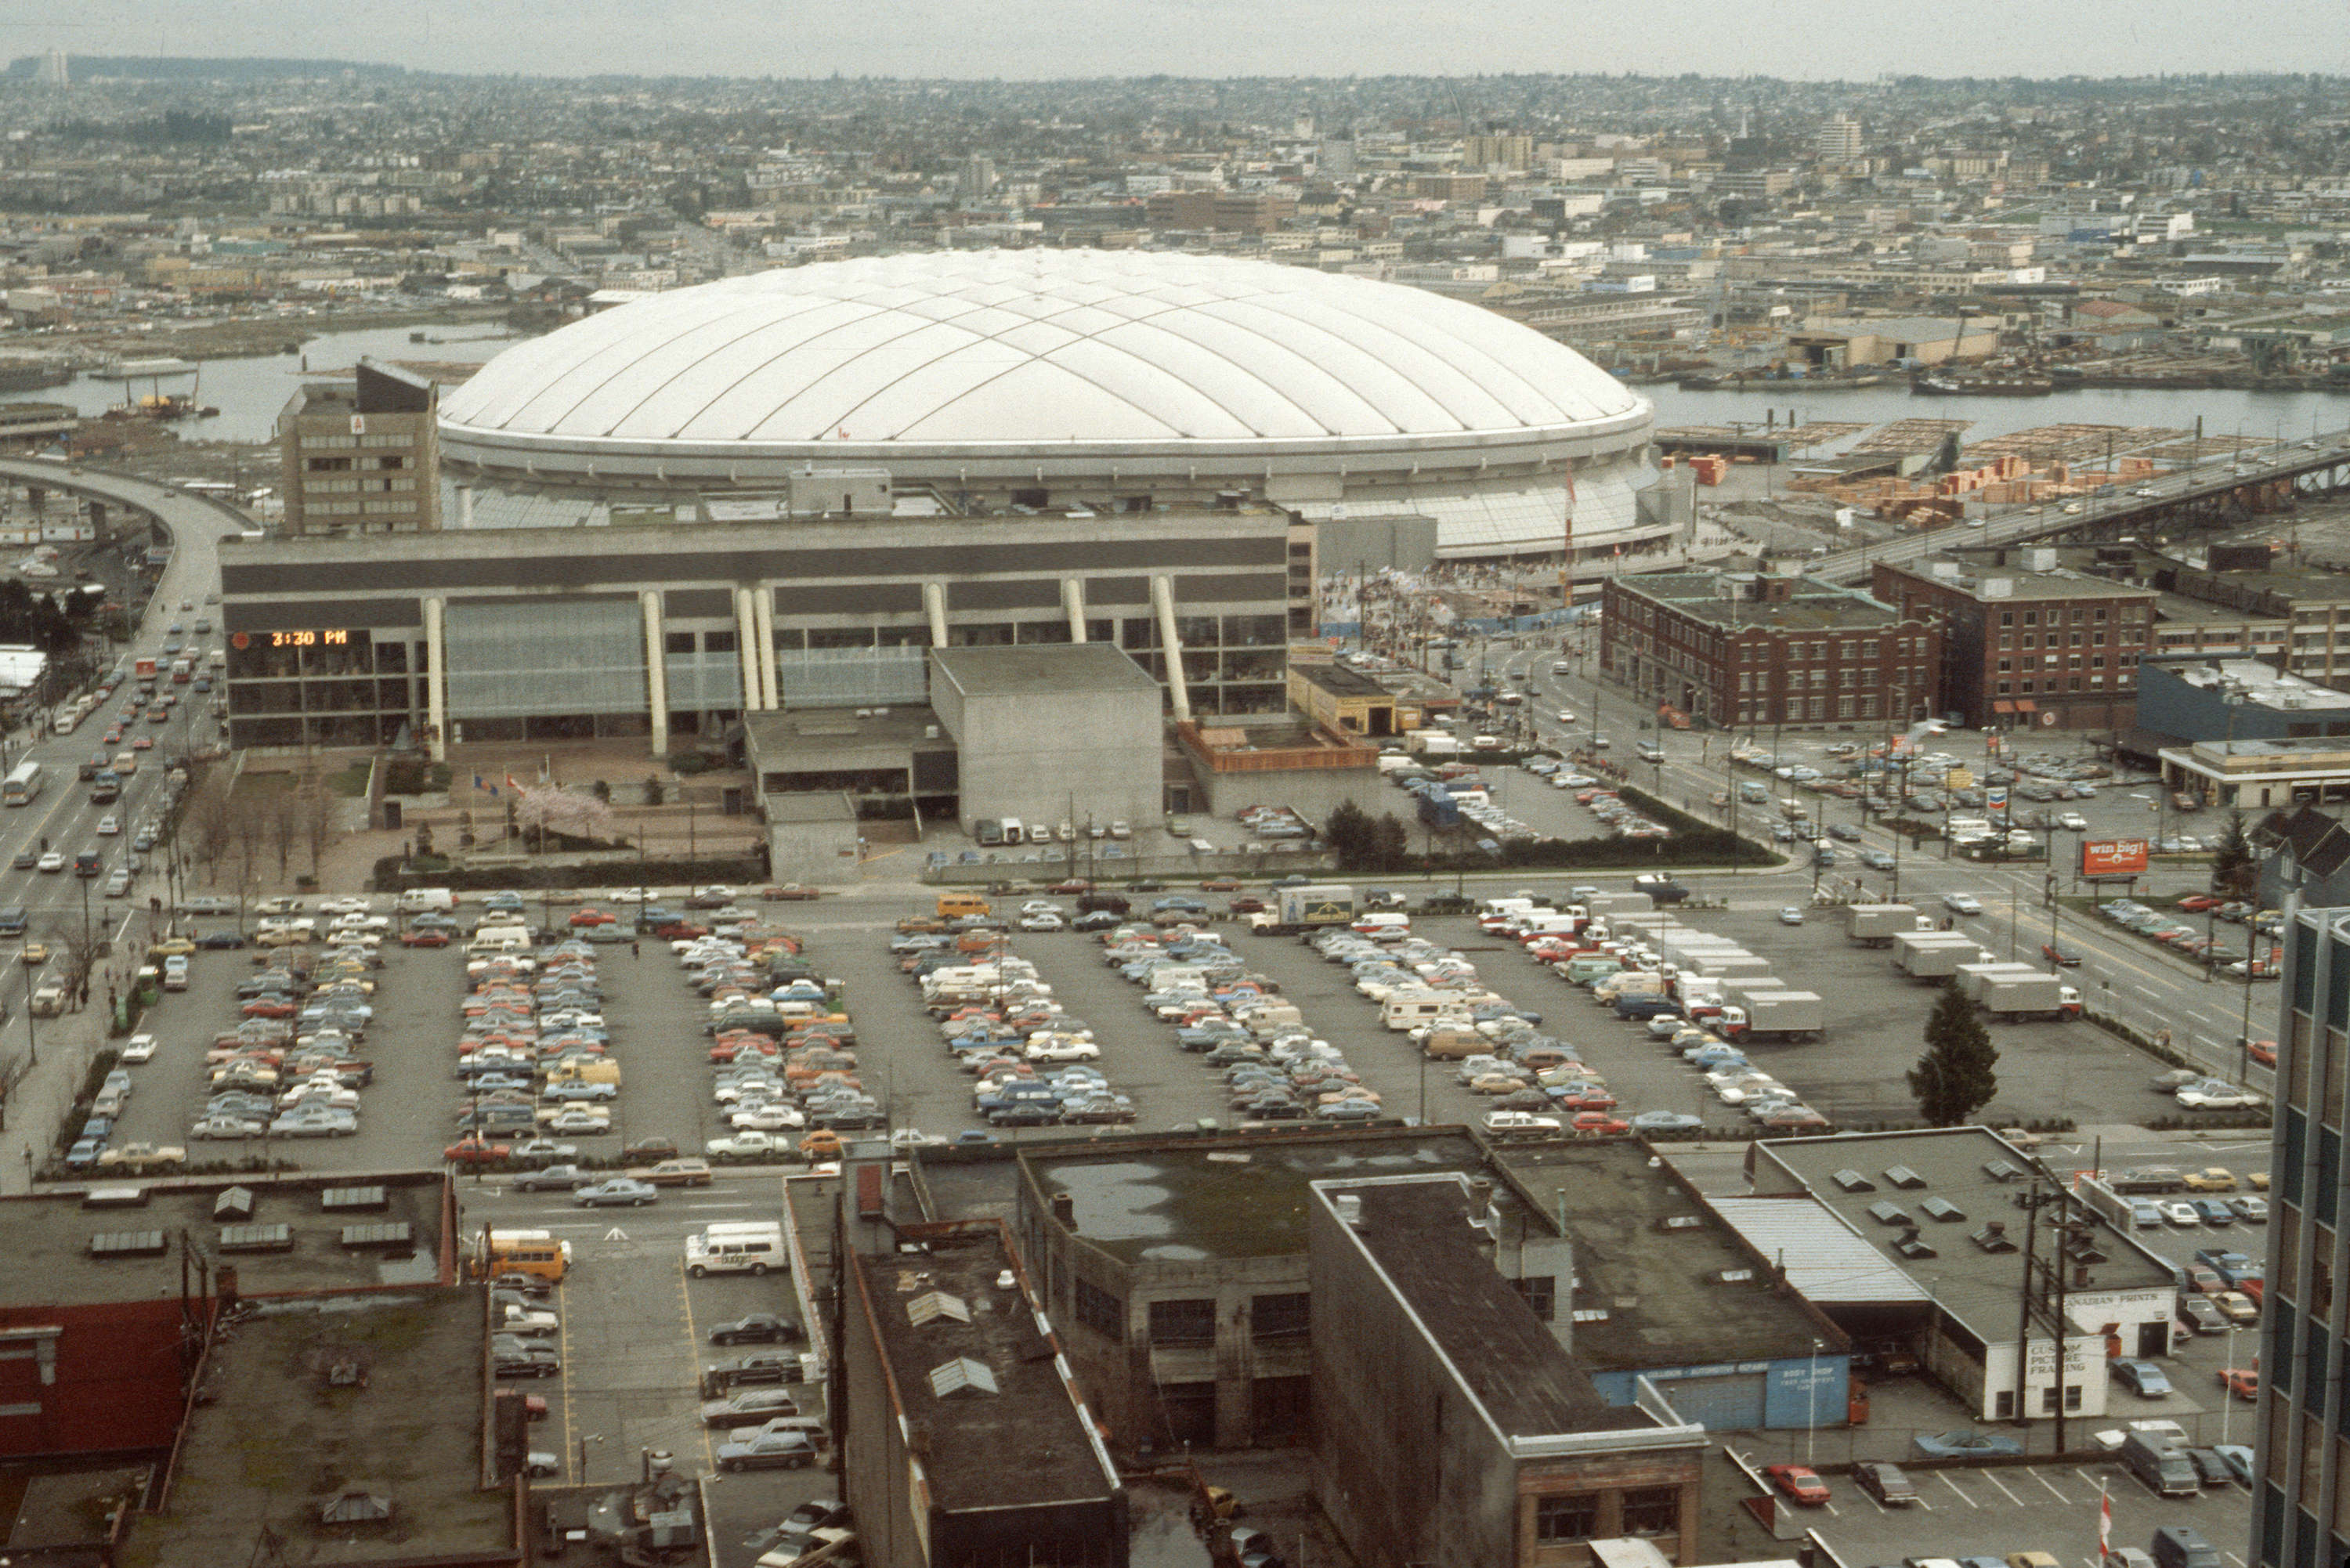 BC Place in 1983 (Vancouver Archives)